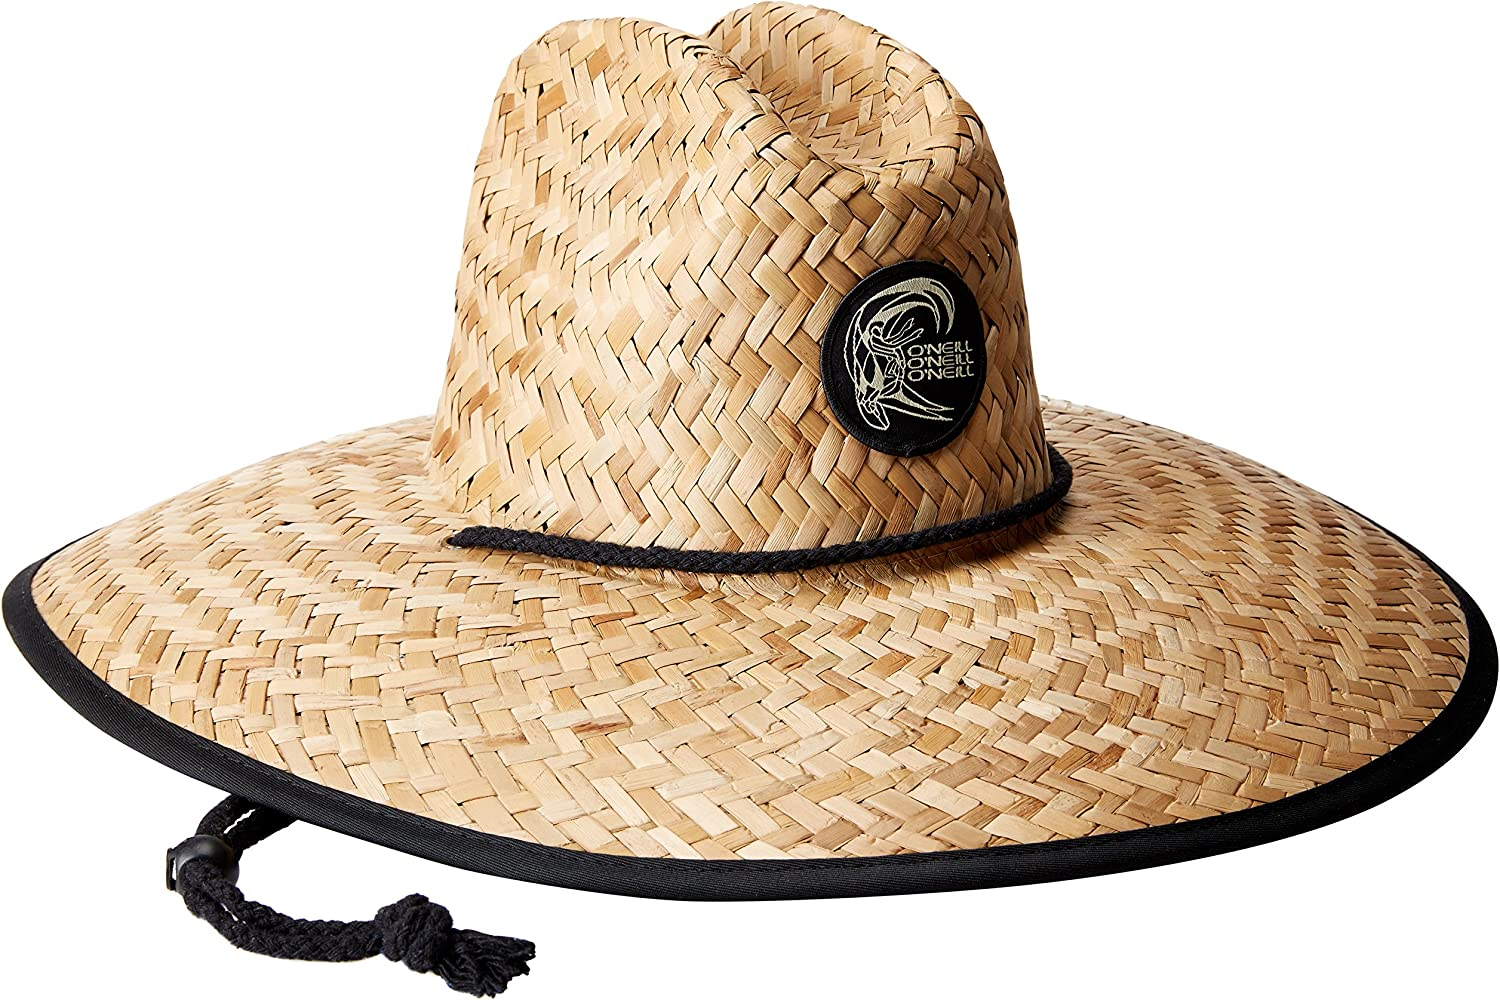 O'NEILL Men's Straw Lifeguard Sonoma Print Sun Hat